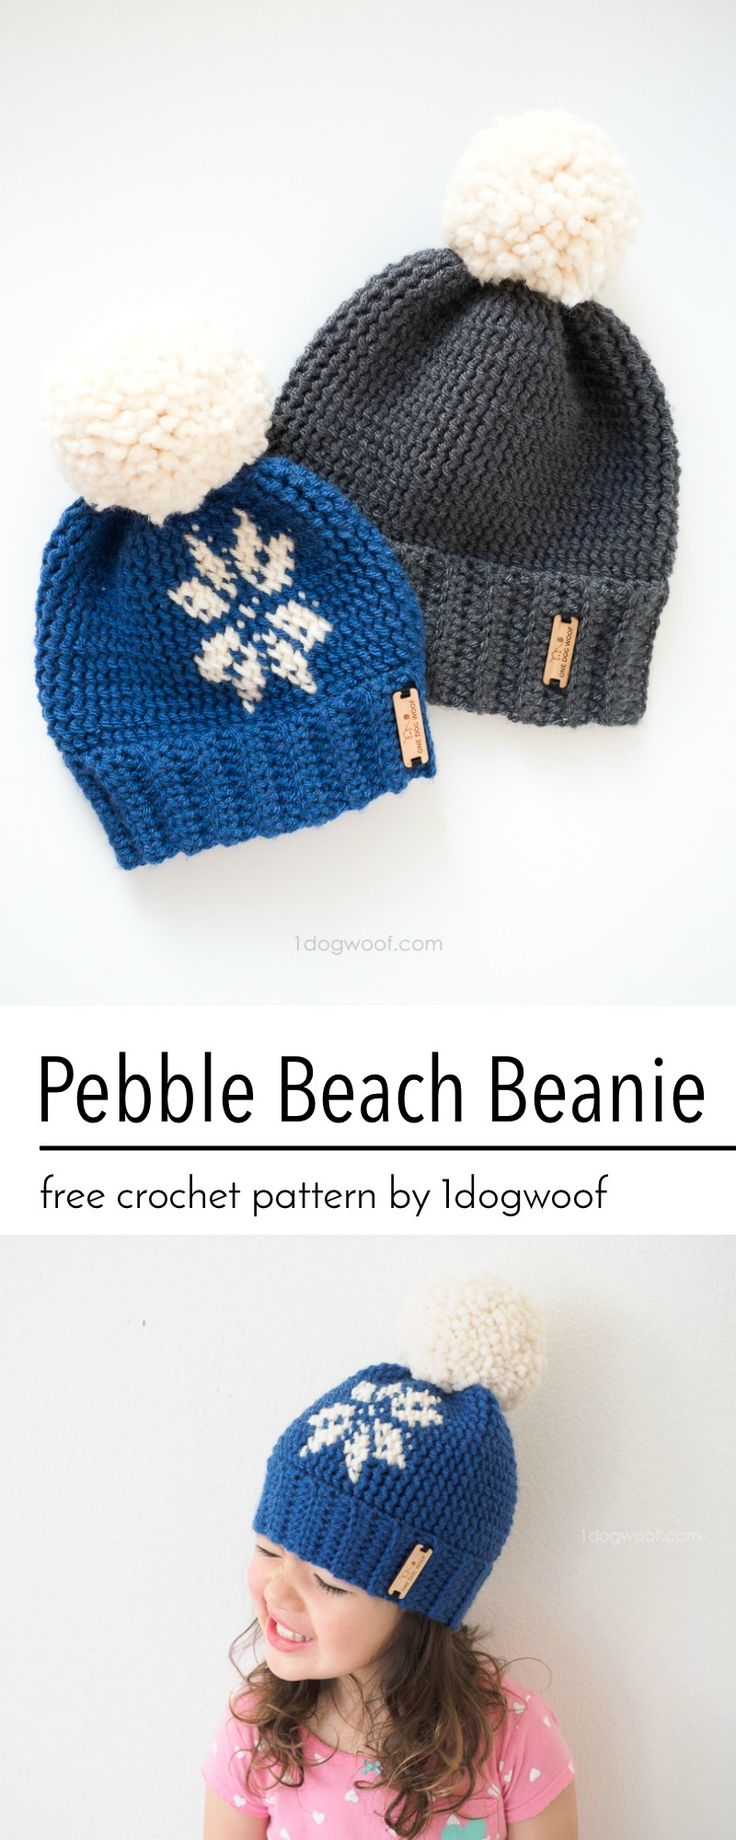 Free crochet pattern and tutorial for the Pebble Beach Beanie by 1dogwoof.com